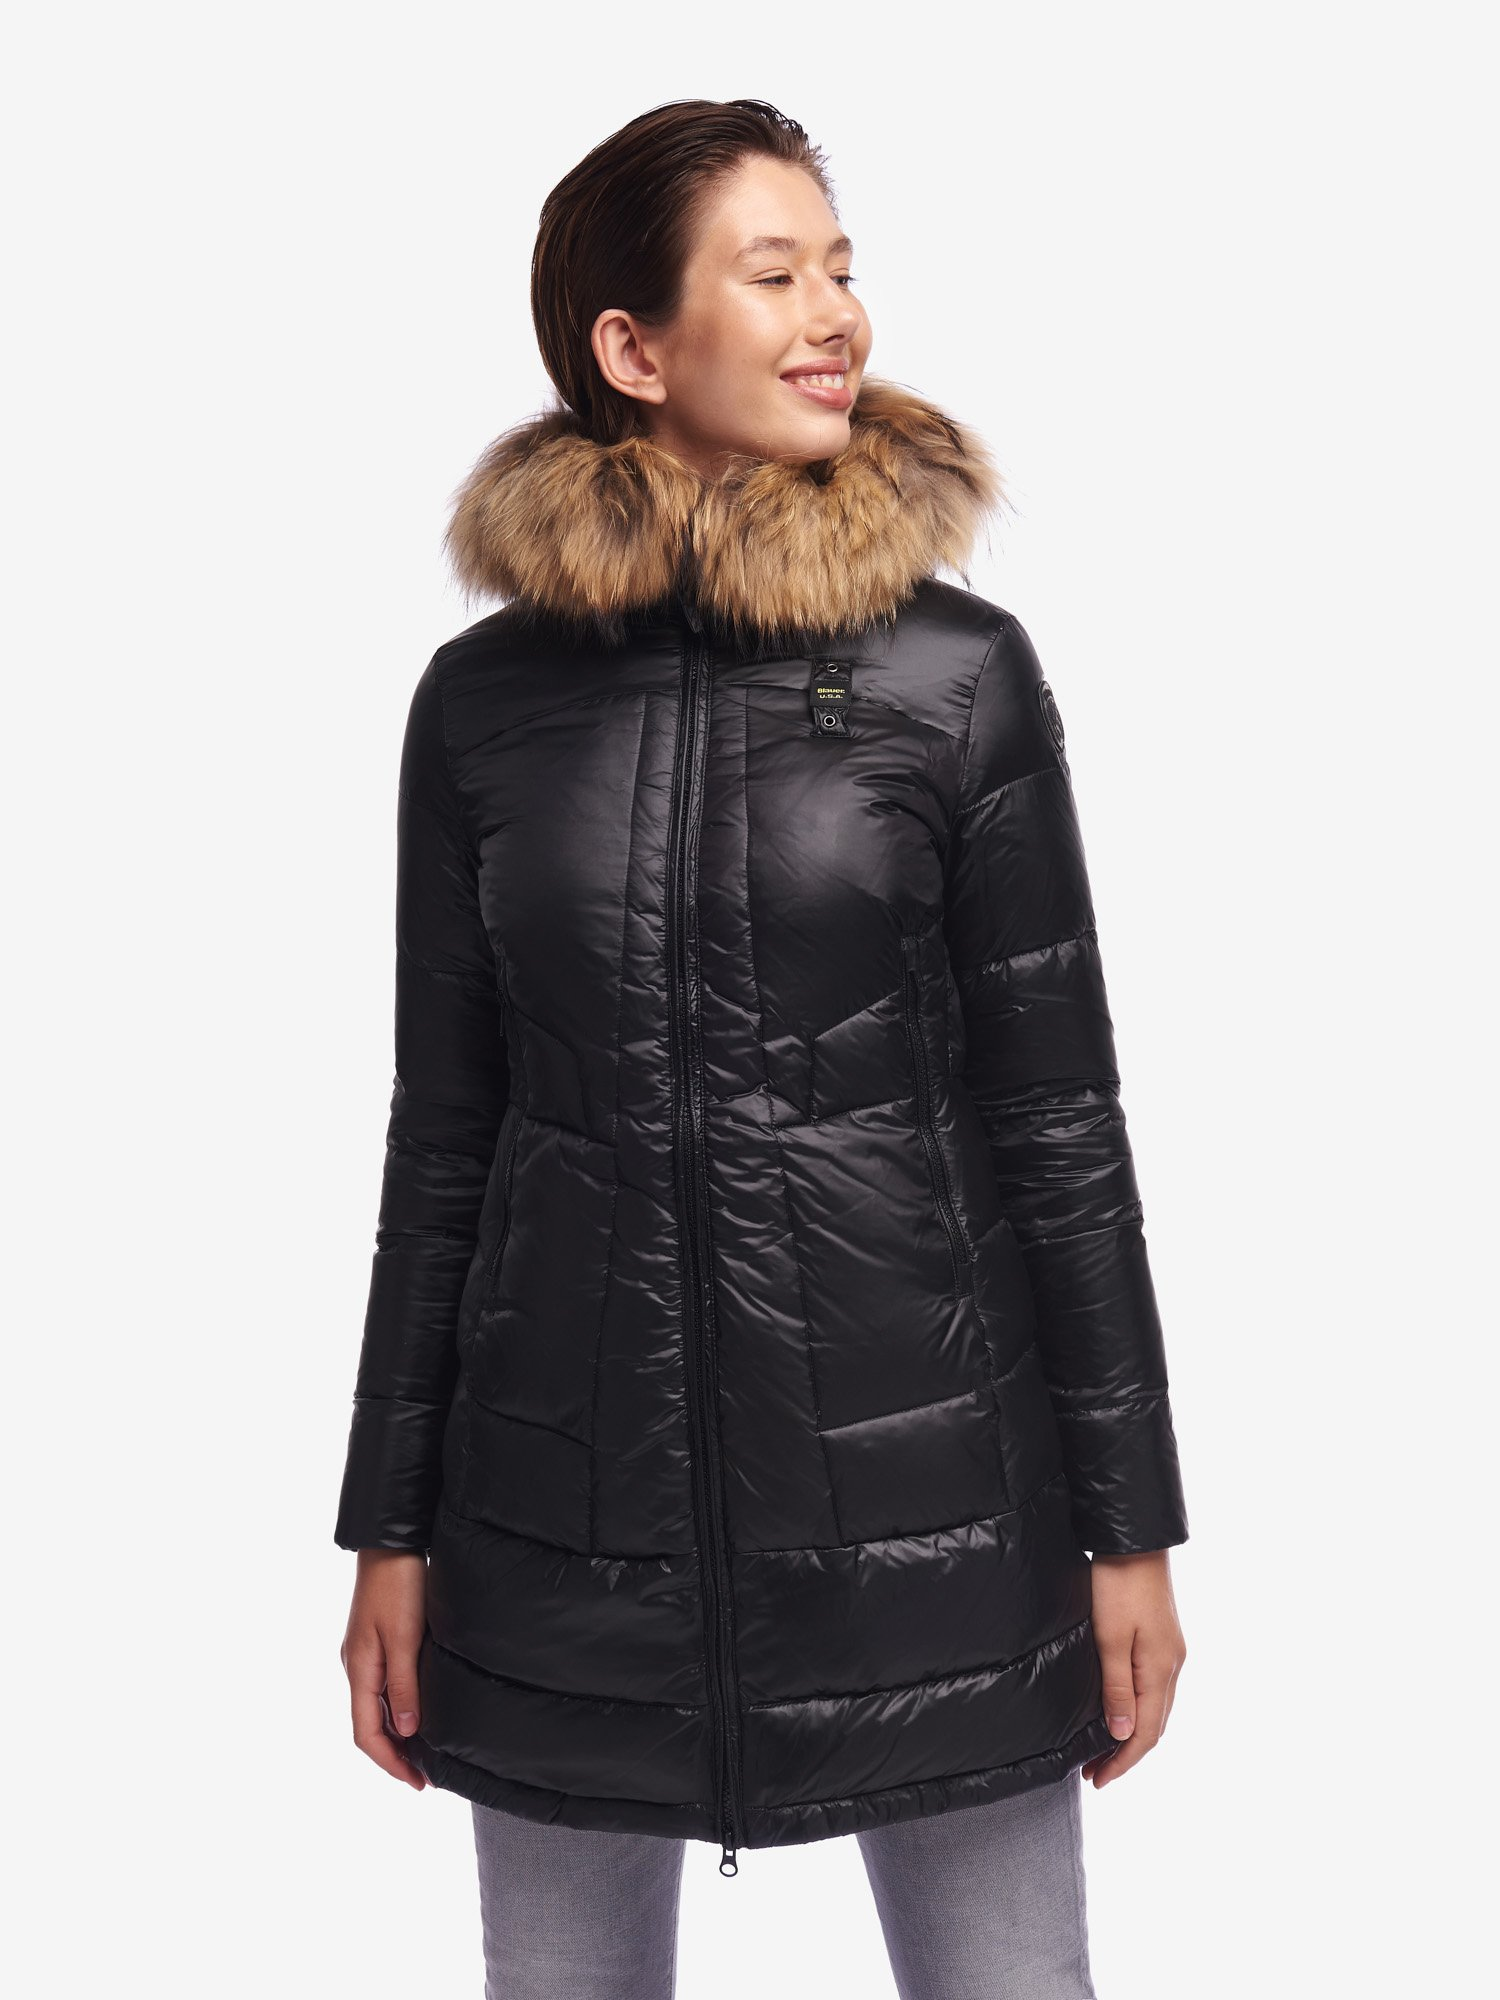 BRADLEY LONG DOWN JACKET WITH FUR - Blauer